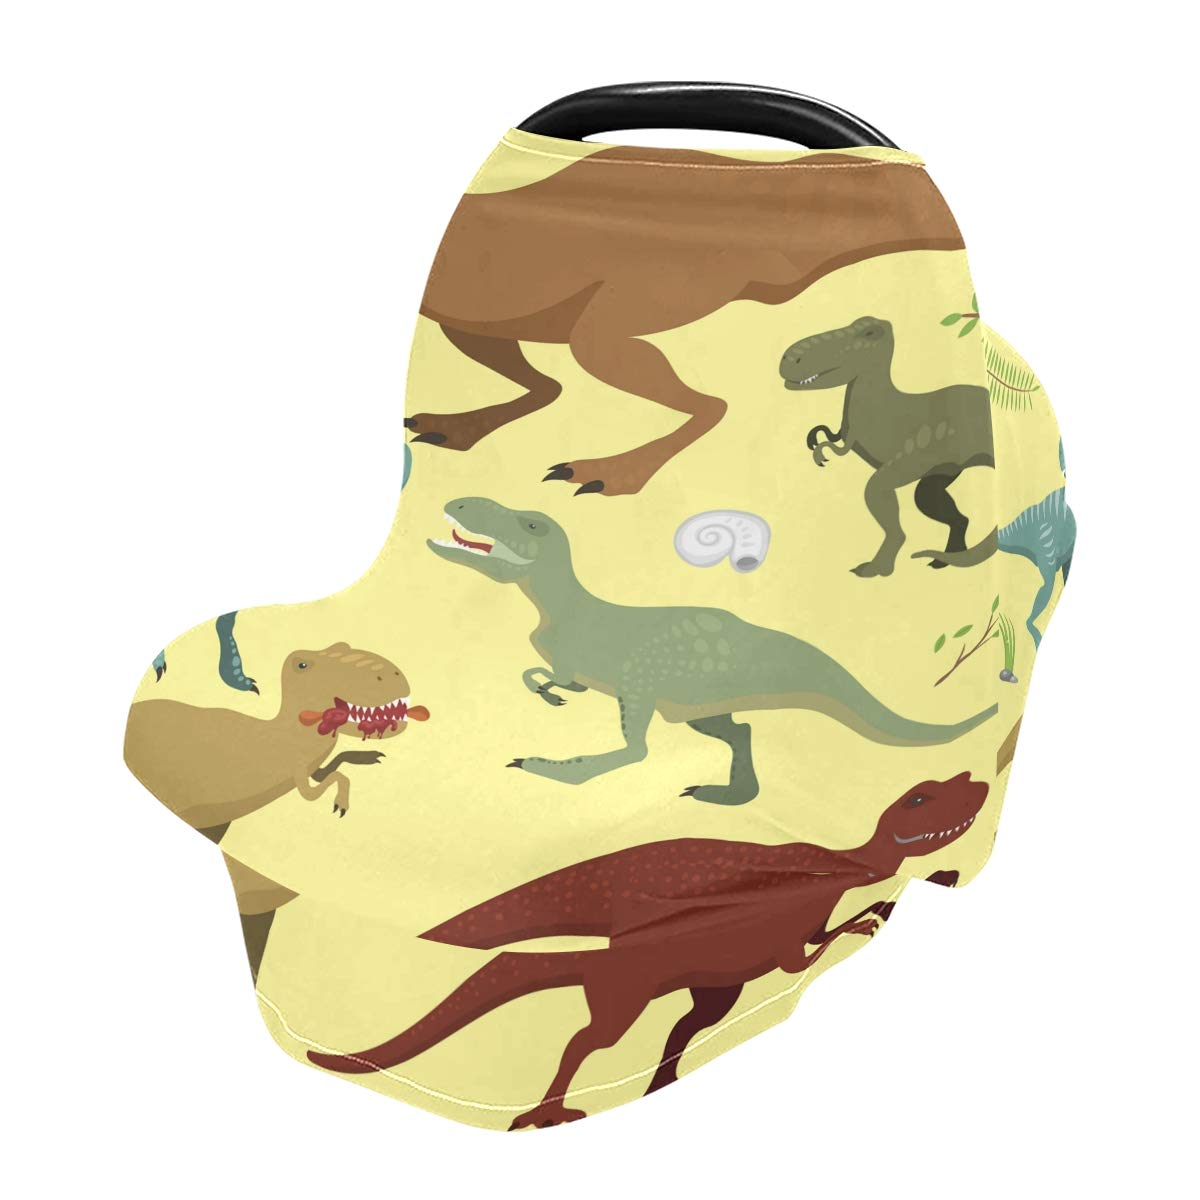 Nursing Cover Breastfeeding Scarf Dinosaur - Baby Car Seat Covers, Infant Stroller Cover, Carseat Canopy for Girls and Boys(801c)